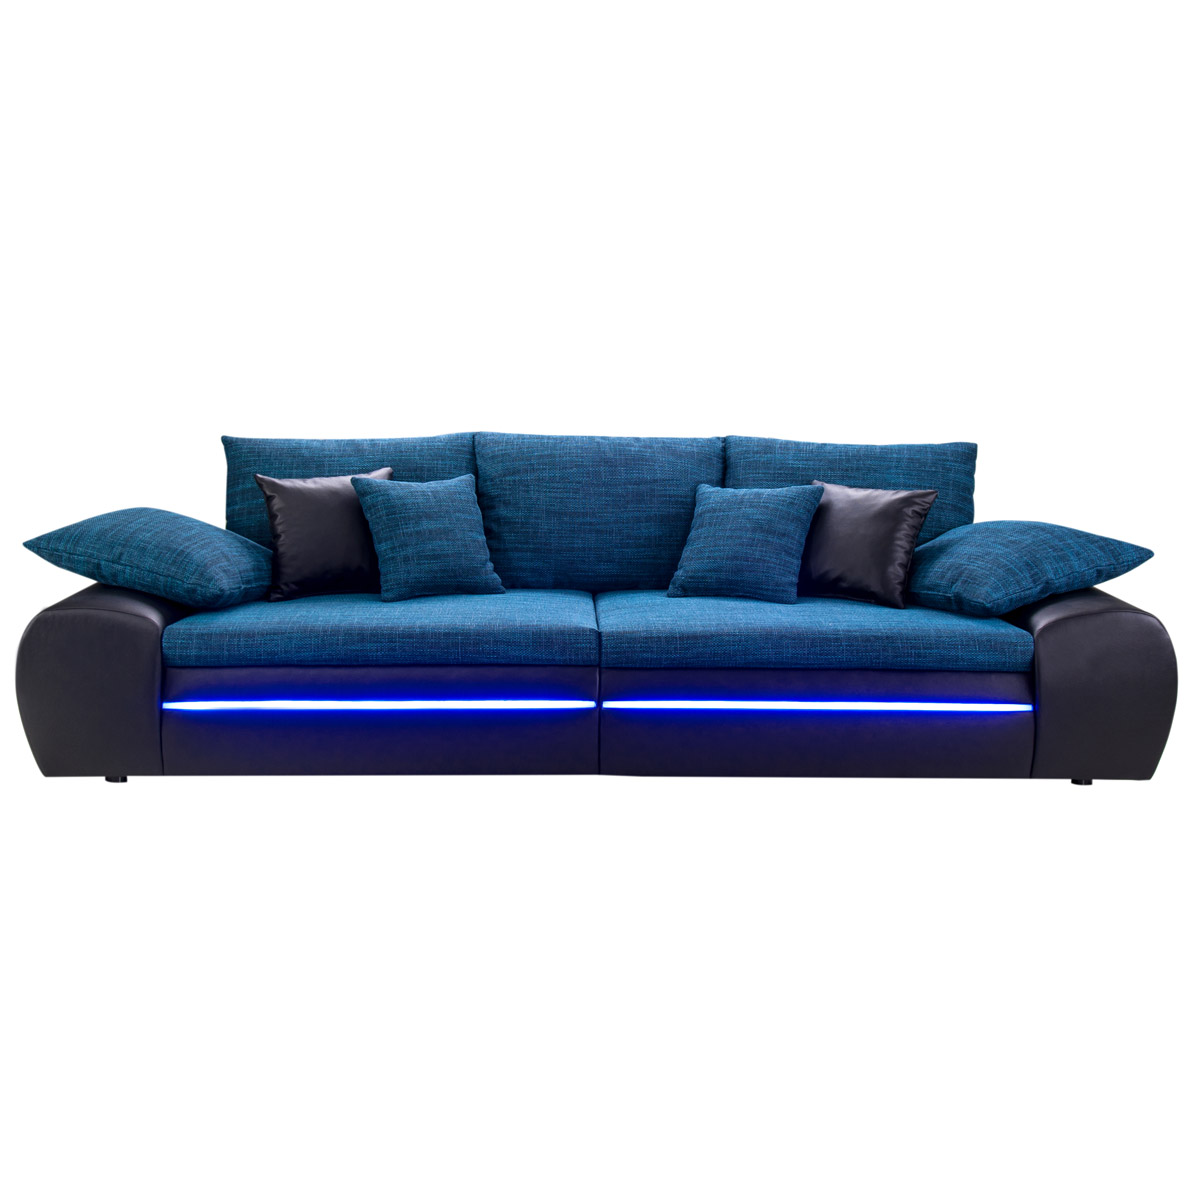 Big Sofa Schlaffunktion Big Sofa Xxl Mit Schlaffunktion Carprola For Big Sofa Xxl Mit